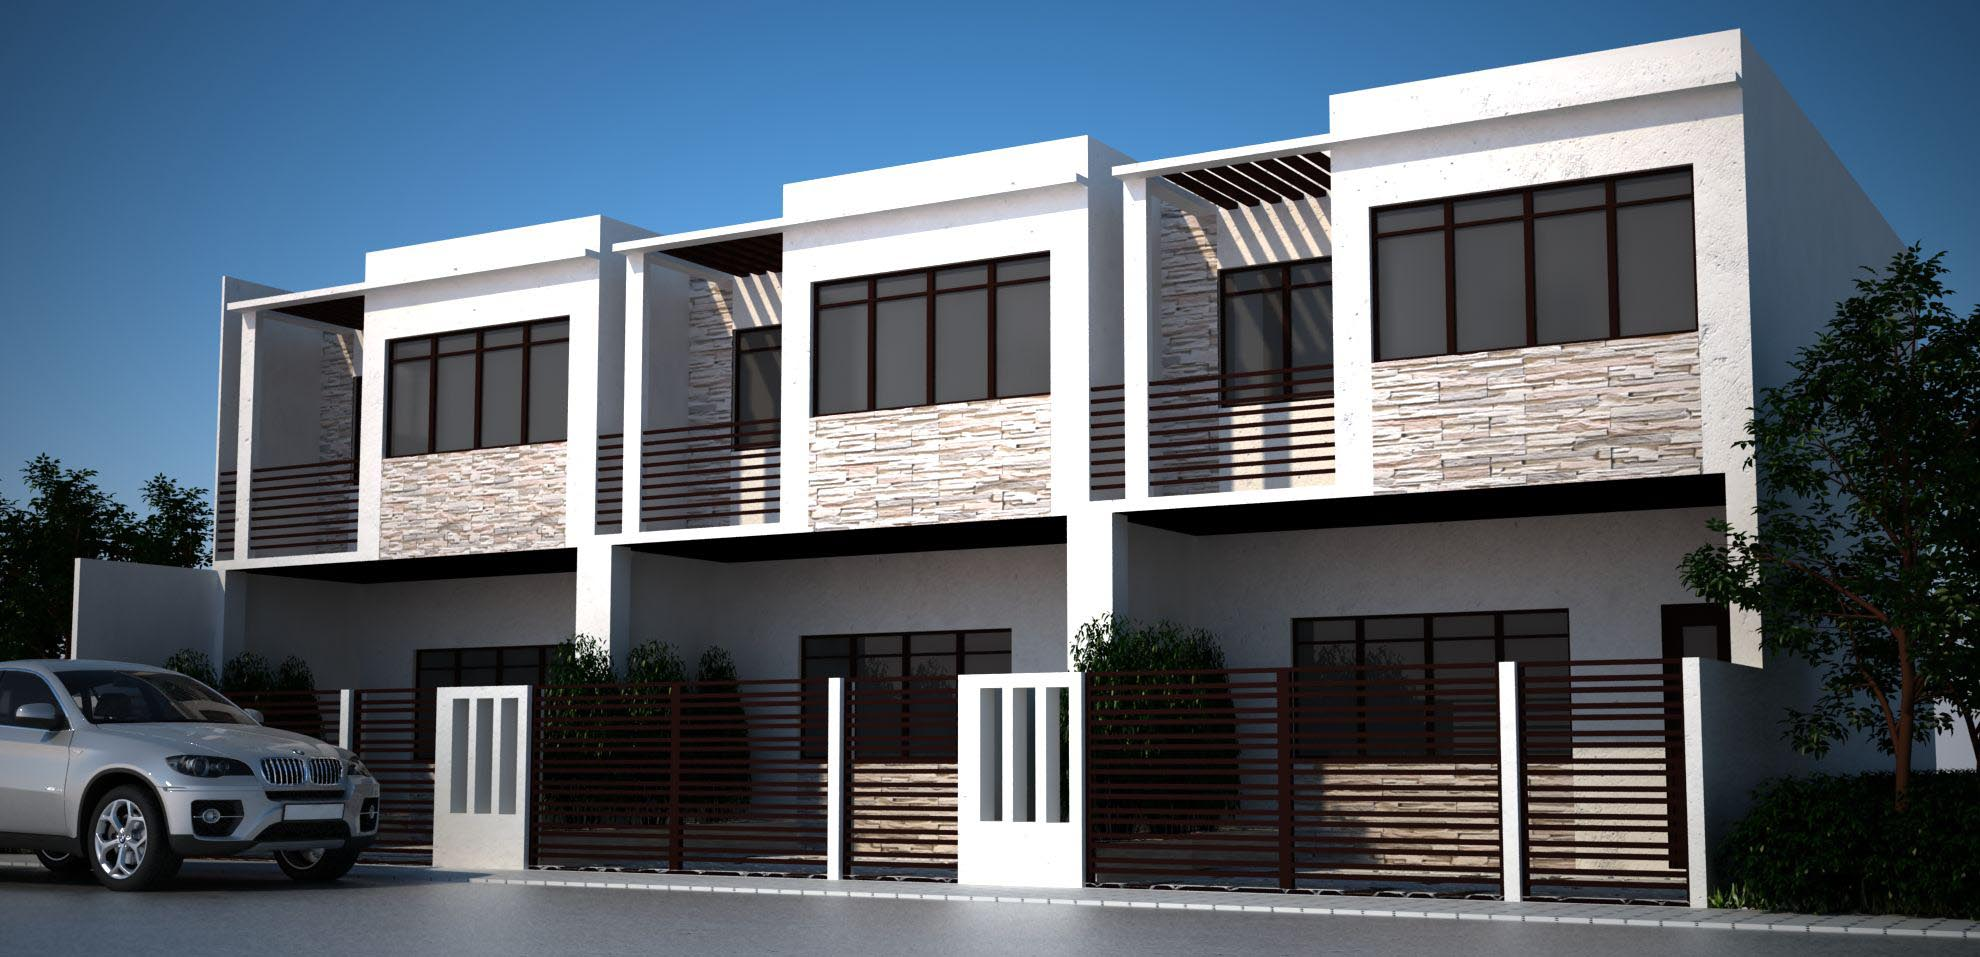 Bulacan Project 3 Units 2 Storey Townhouses